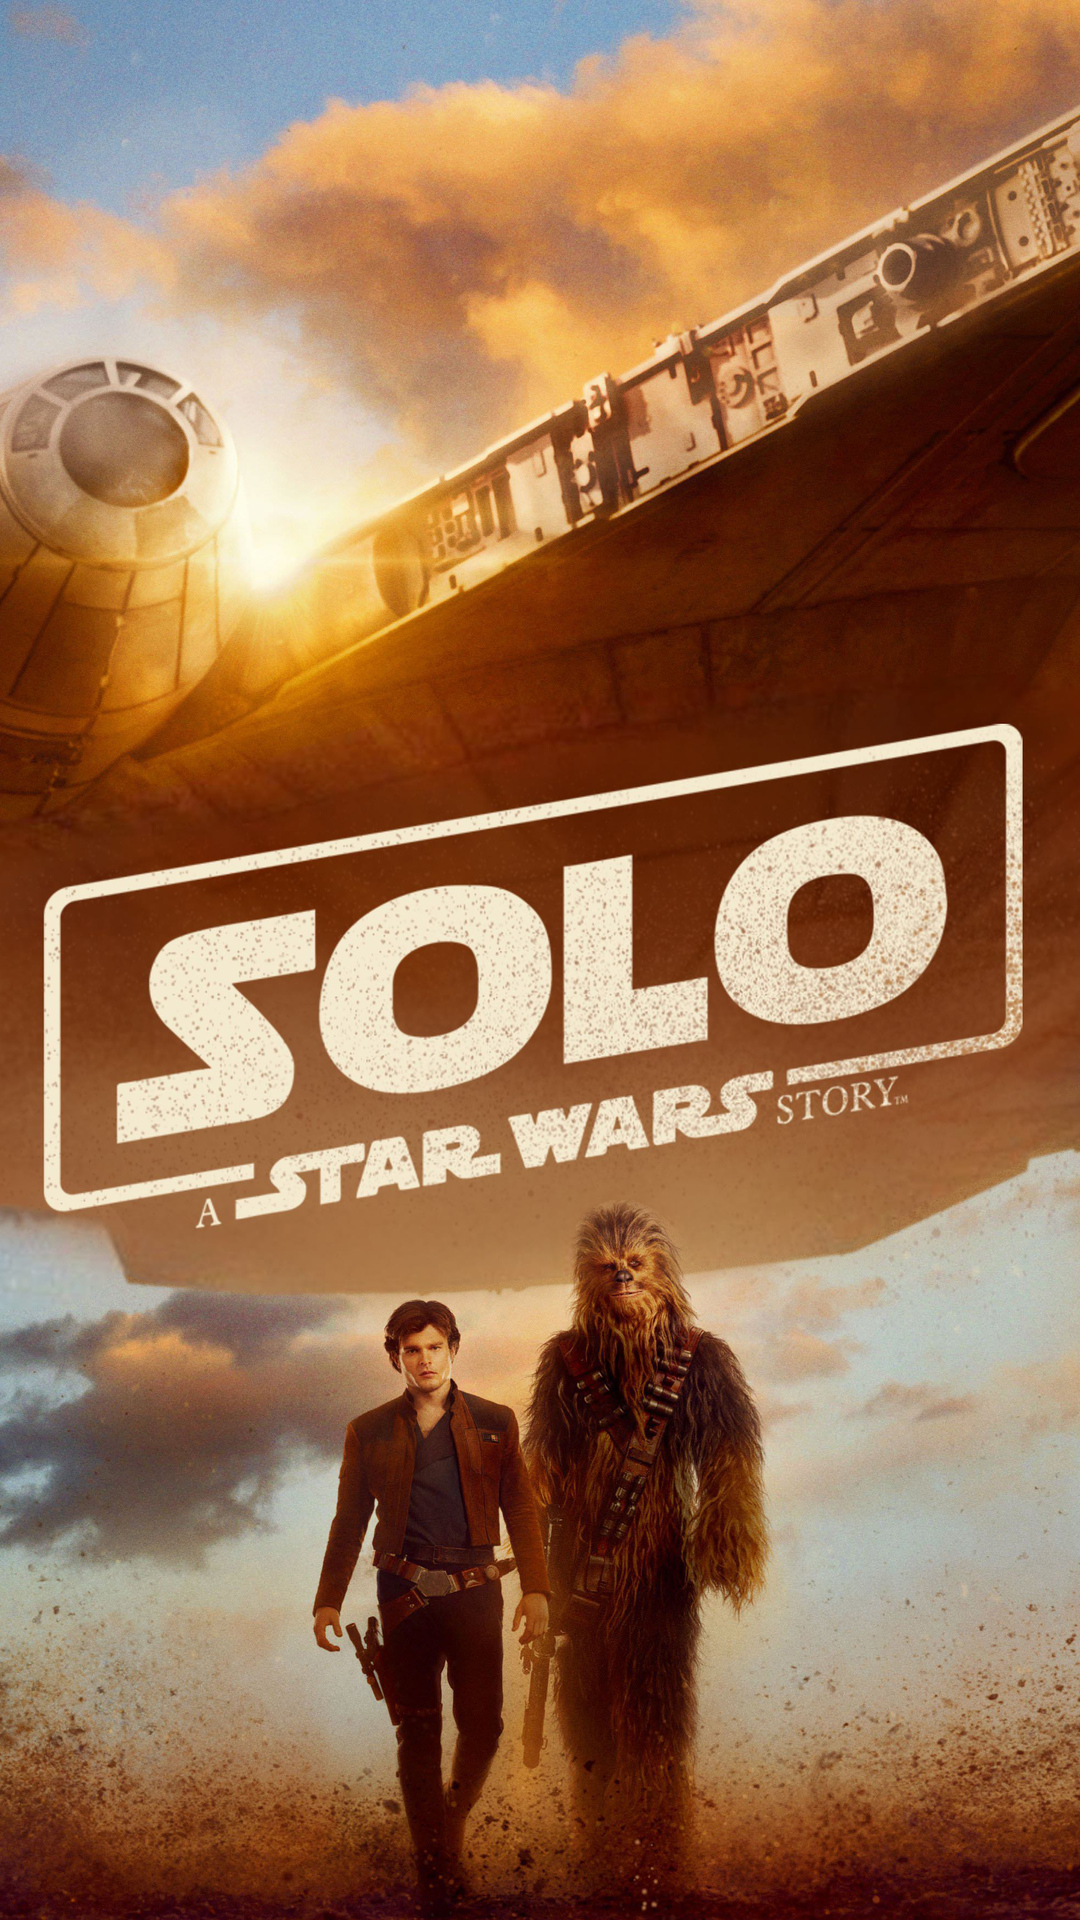 1080X1920 Han Solo And Chewbacca Solo A Star Wars Story Iphone 7,6S,6 Plus, Pixel Xl -3666